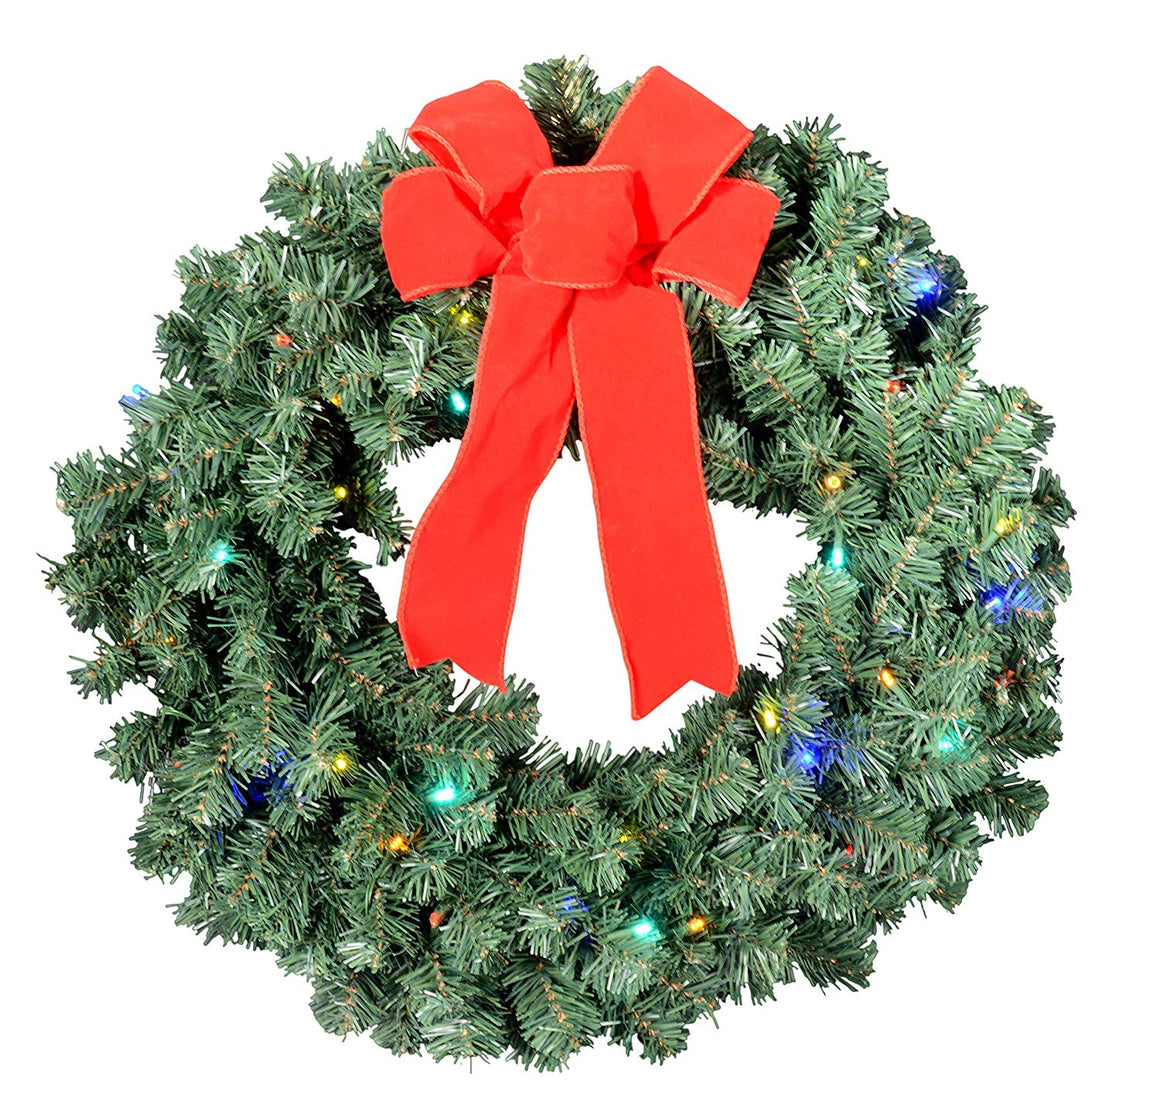 GER 24 Inch Balsam Pine Christmas Wreath with 180 Tips and 36 Multi Colored LED Lights - Battery Operated with Timer